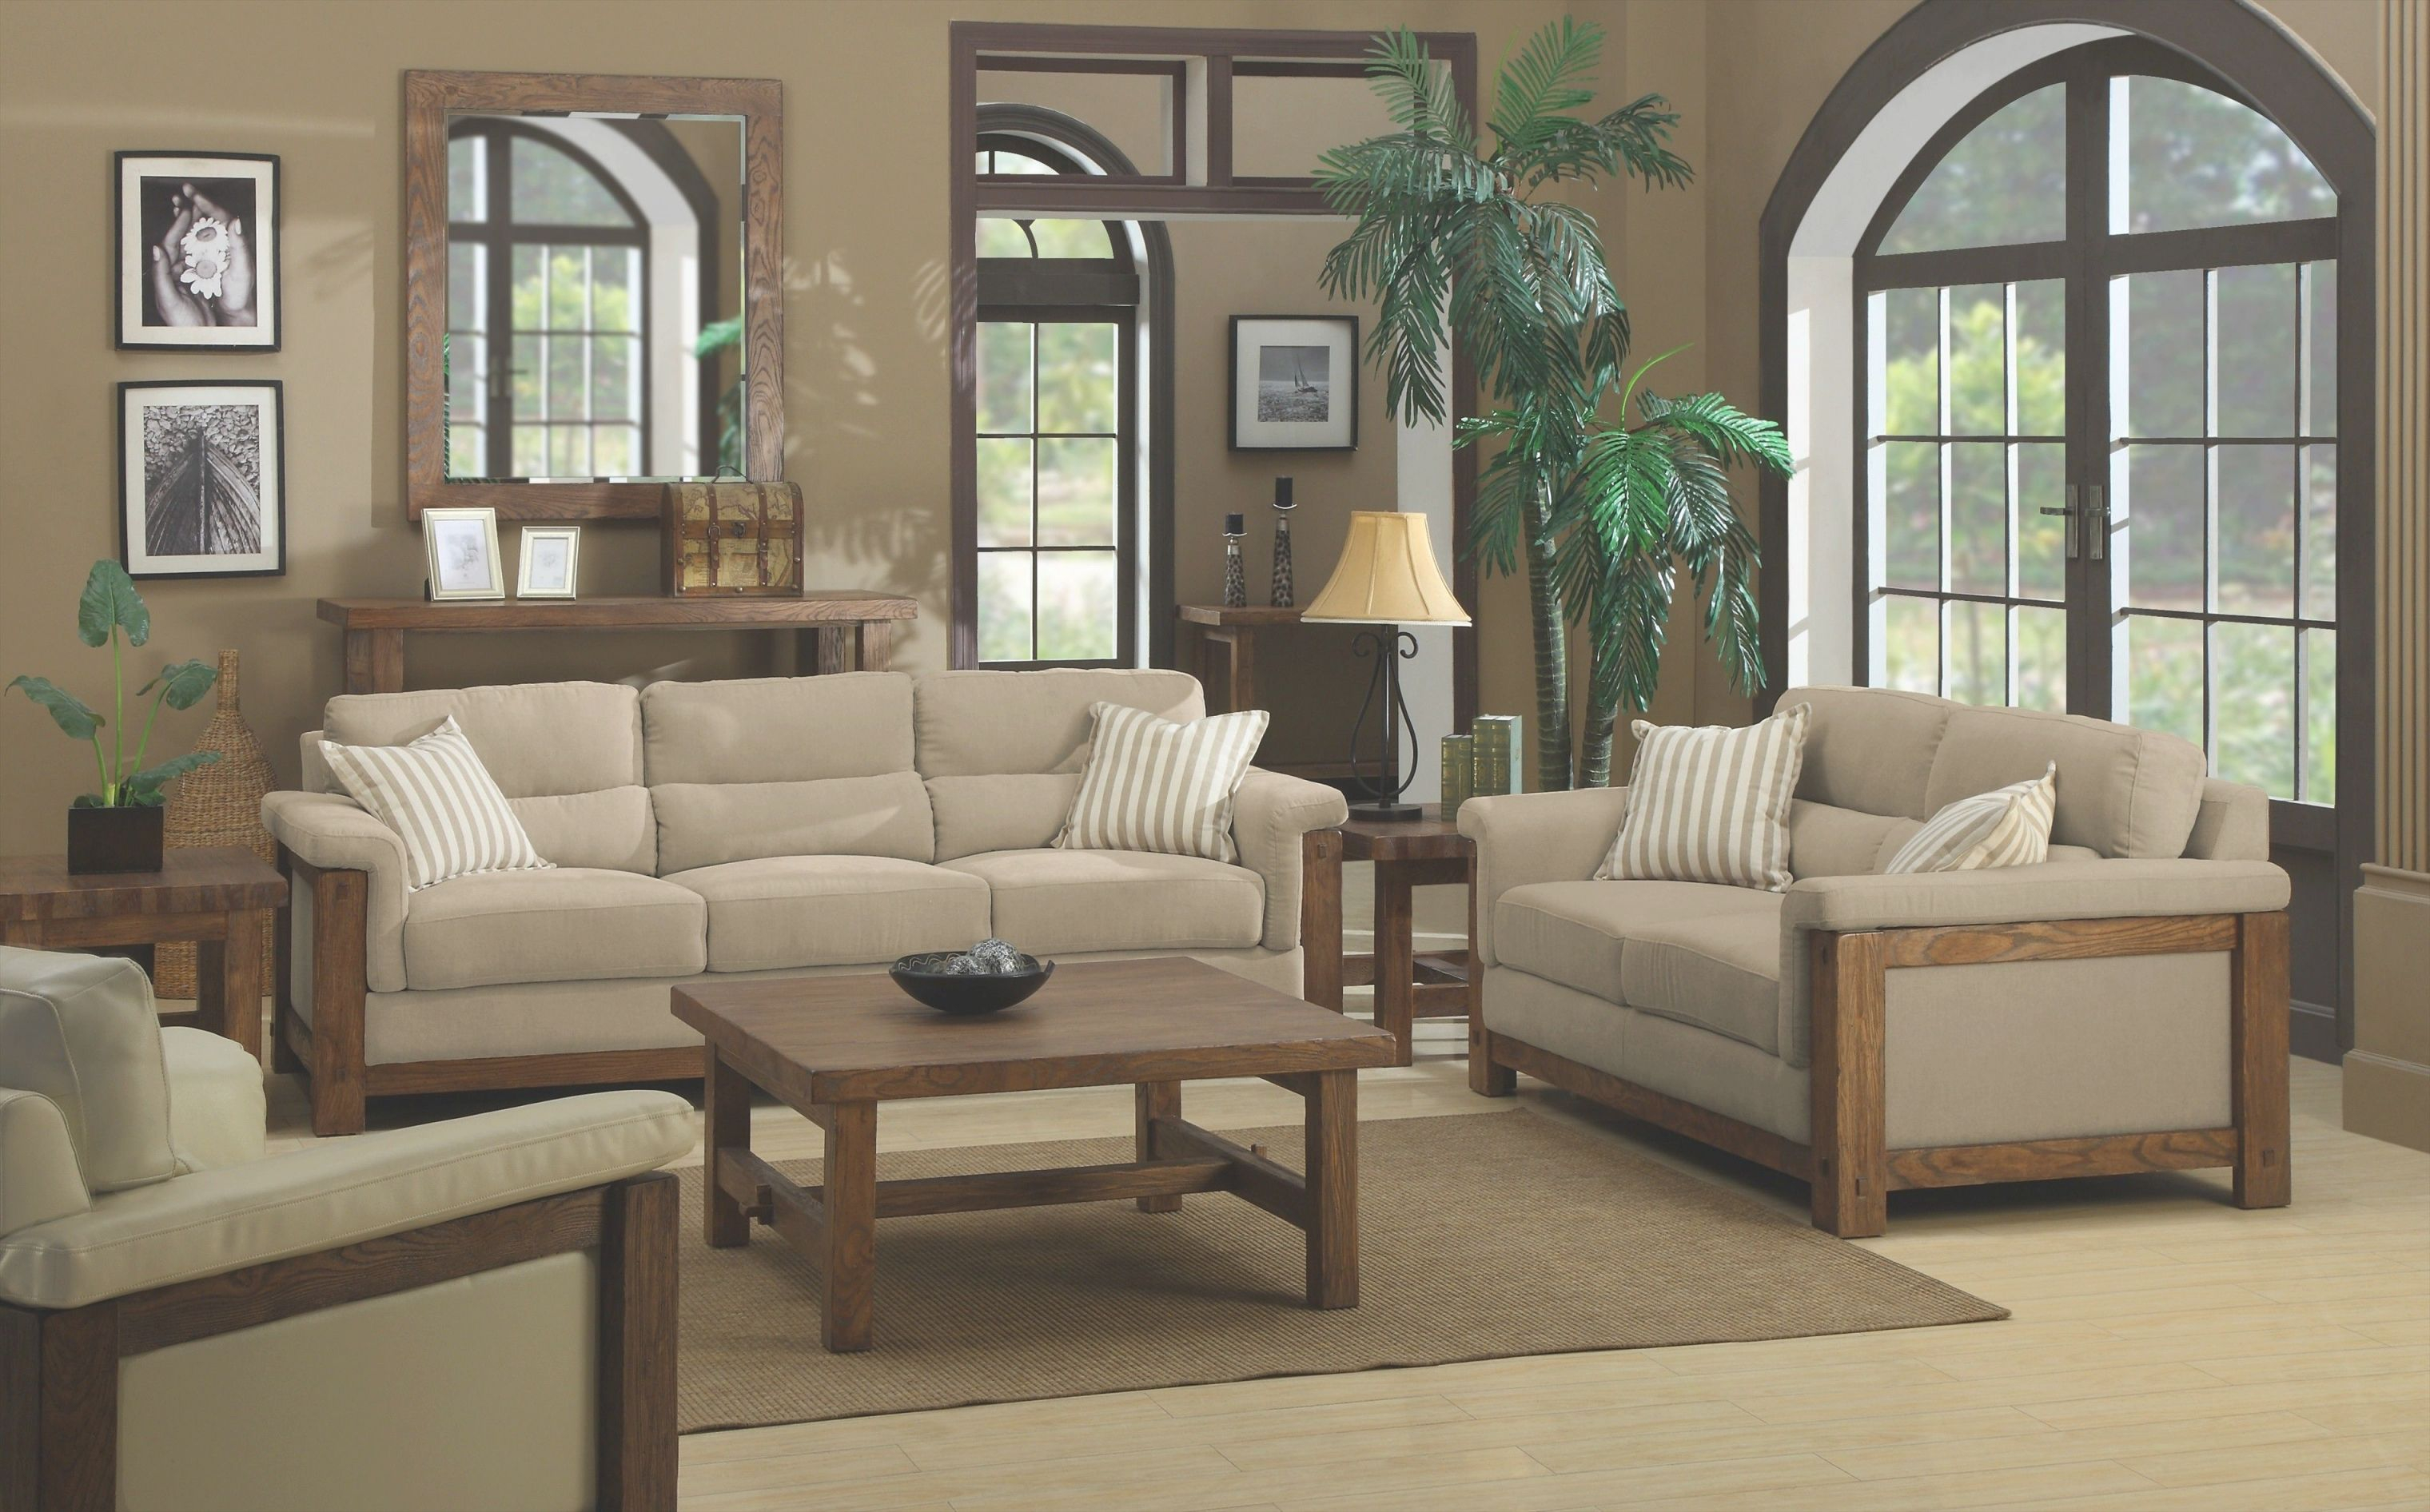 Small Rustic Living Rooms - Google Search | Canal Singles inside Rustic Living Room Furniture